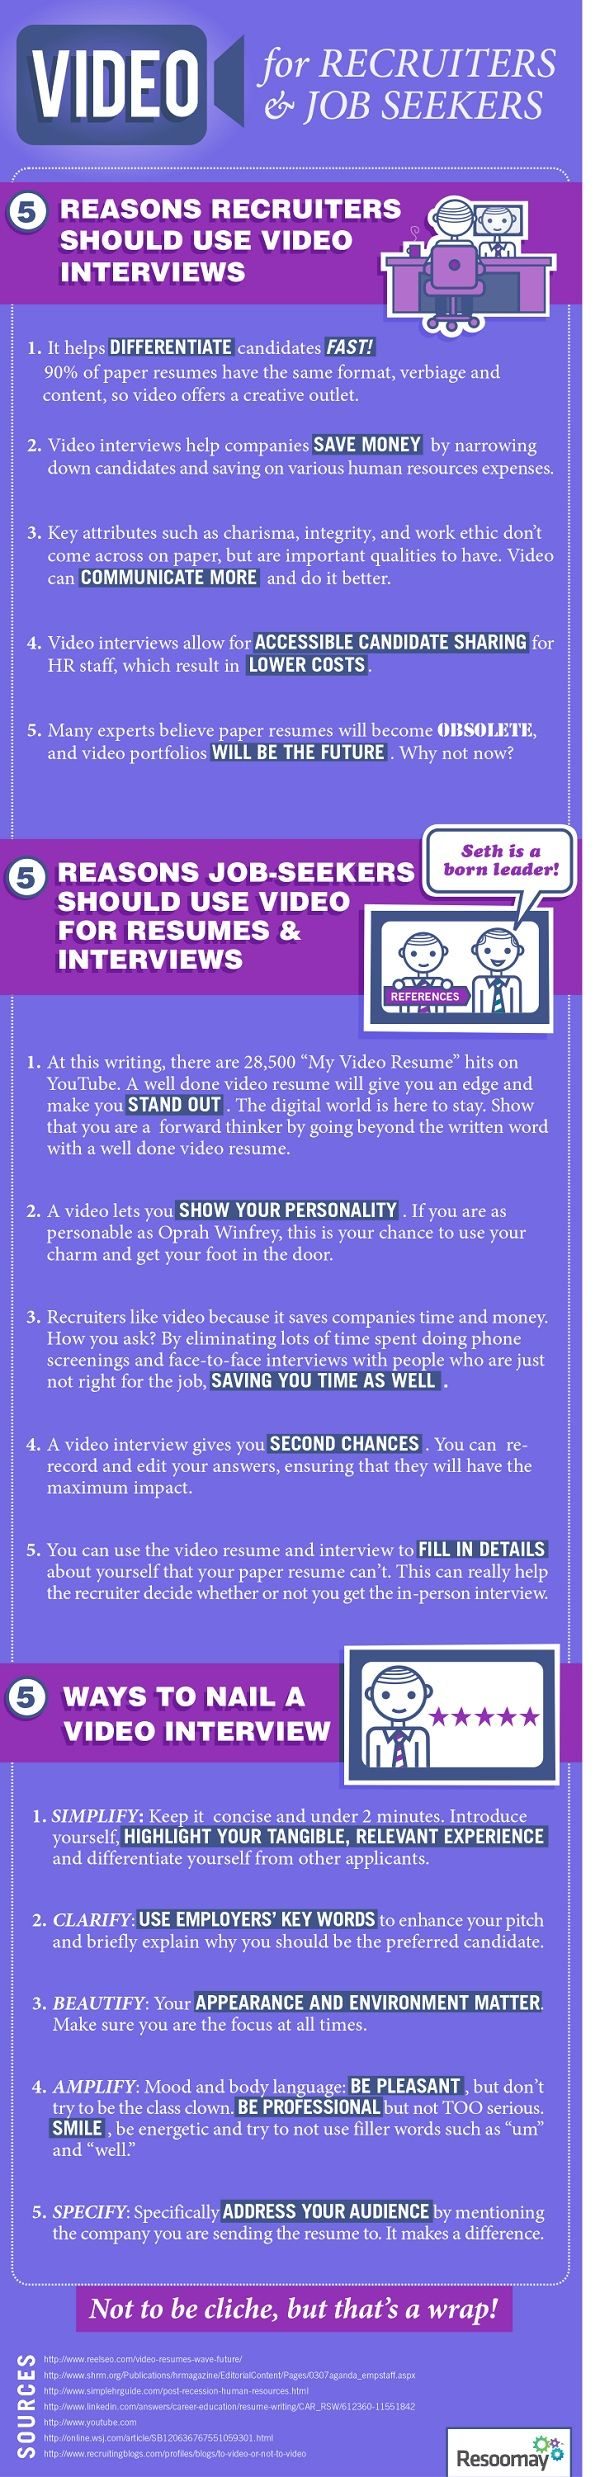 Video For Recruiters U0026 Job Seekers Want To Know More, Ask Me Here